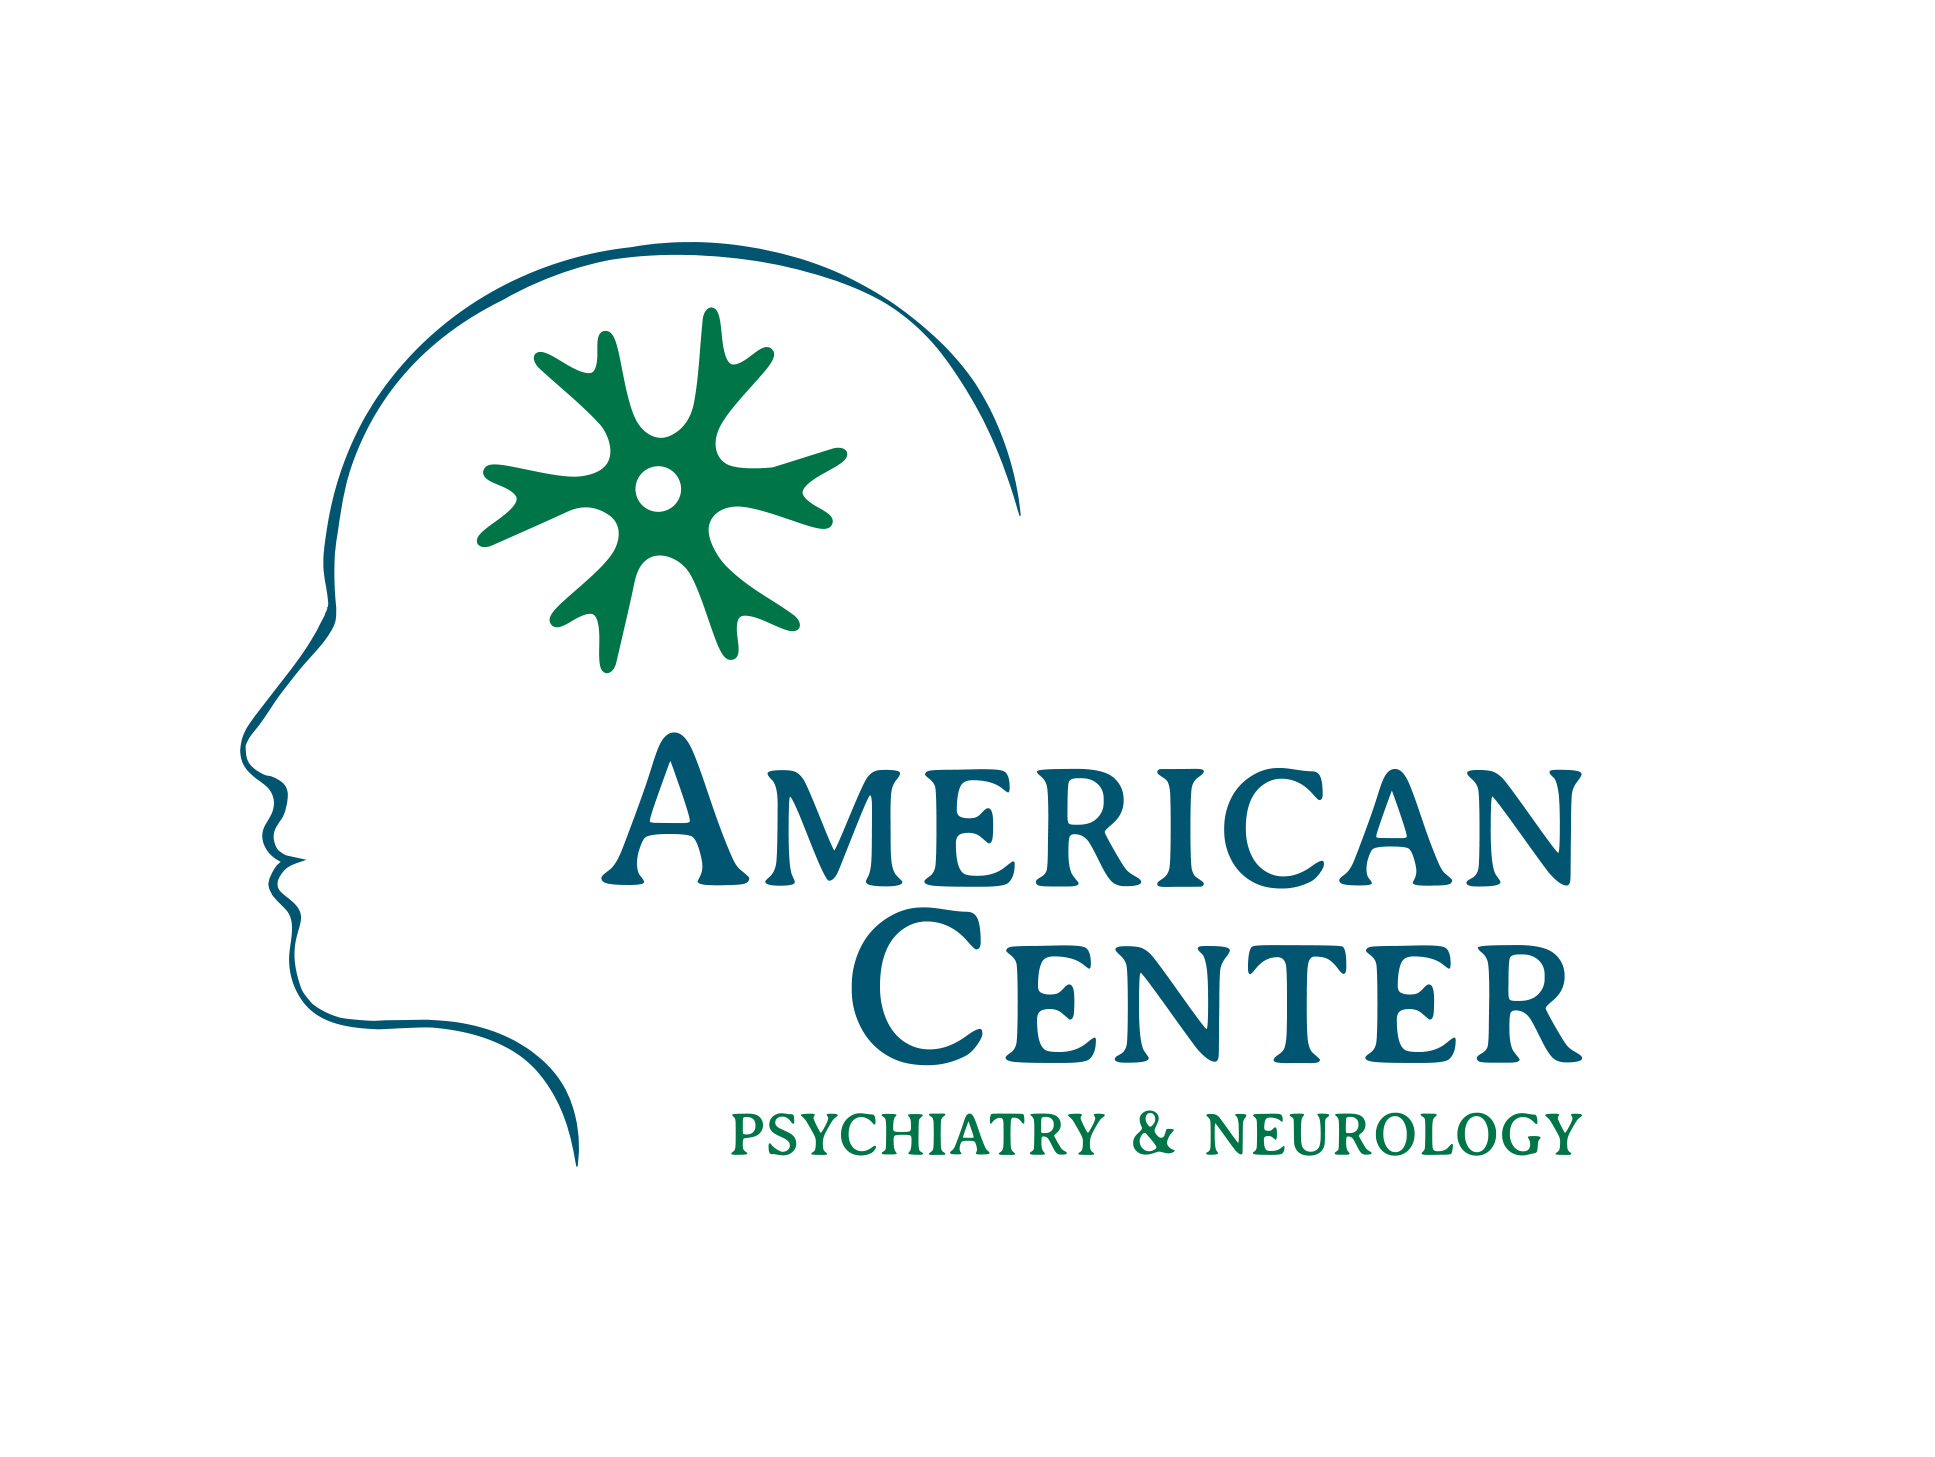 American Center for Psychiatry and Neurology - Al Ain